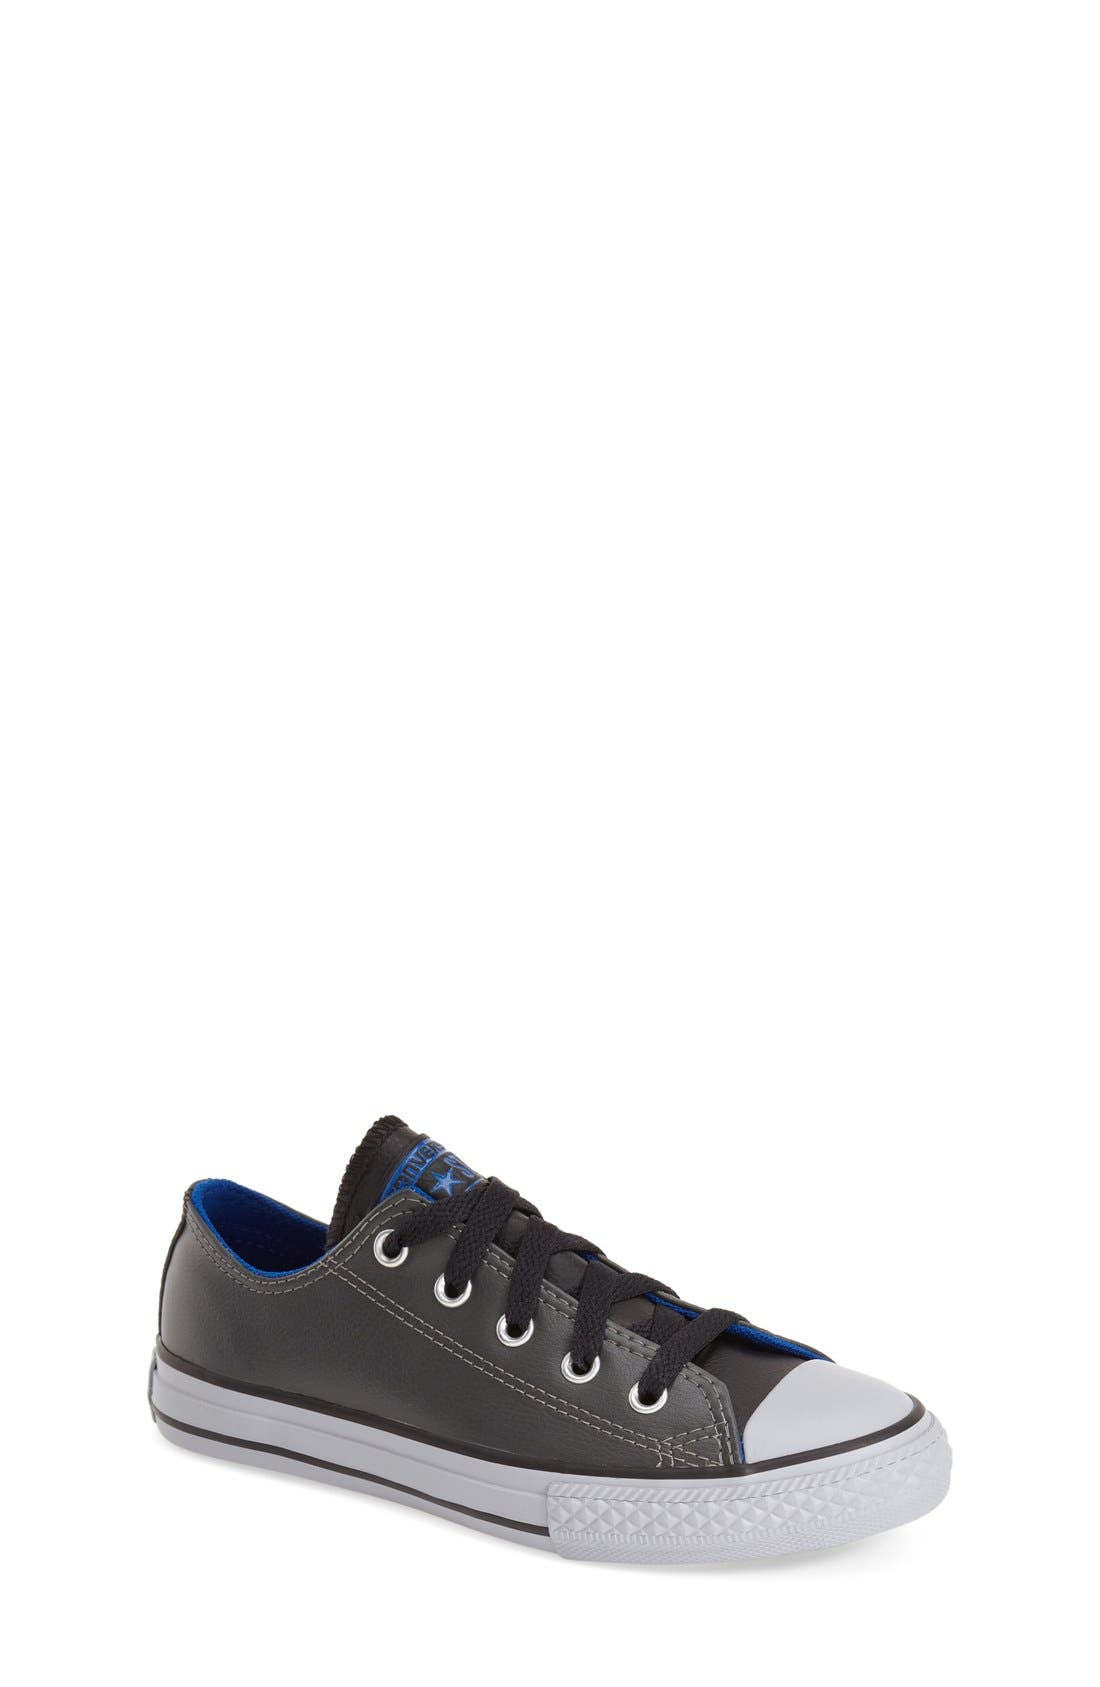 Alternate Image 1 Selected - Converse Chuck Taylor® All Star® 'Ox' Sneaker (Toddler, Little Kid & Big Kid)